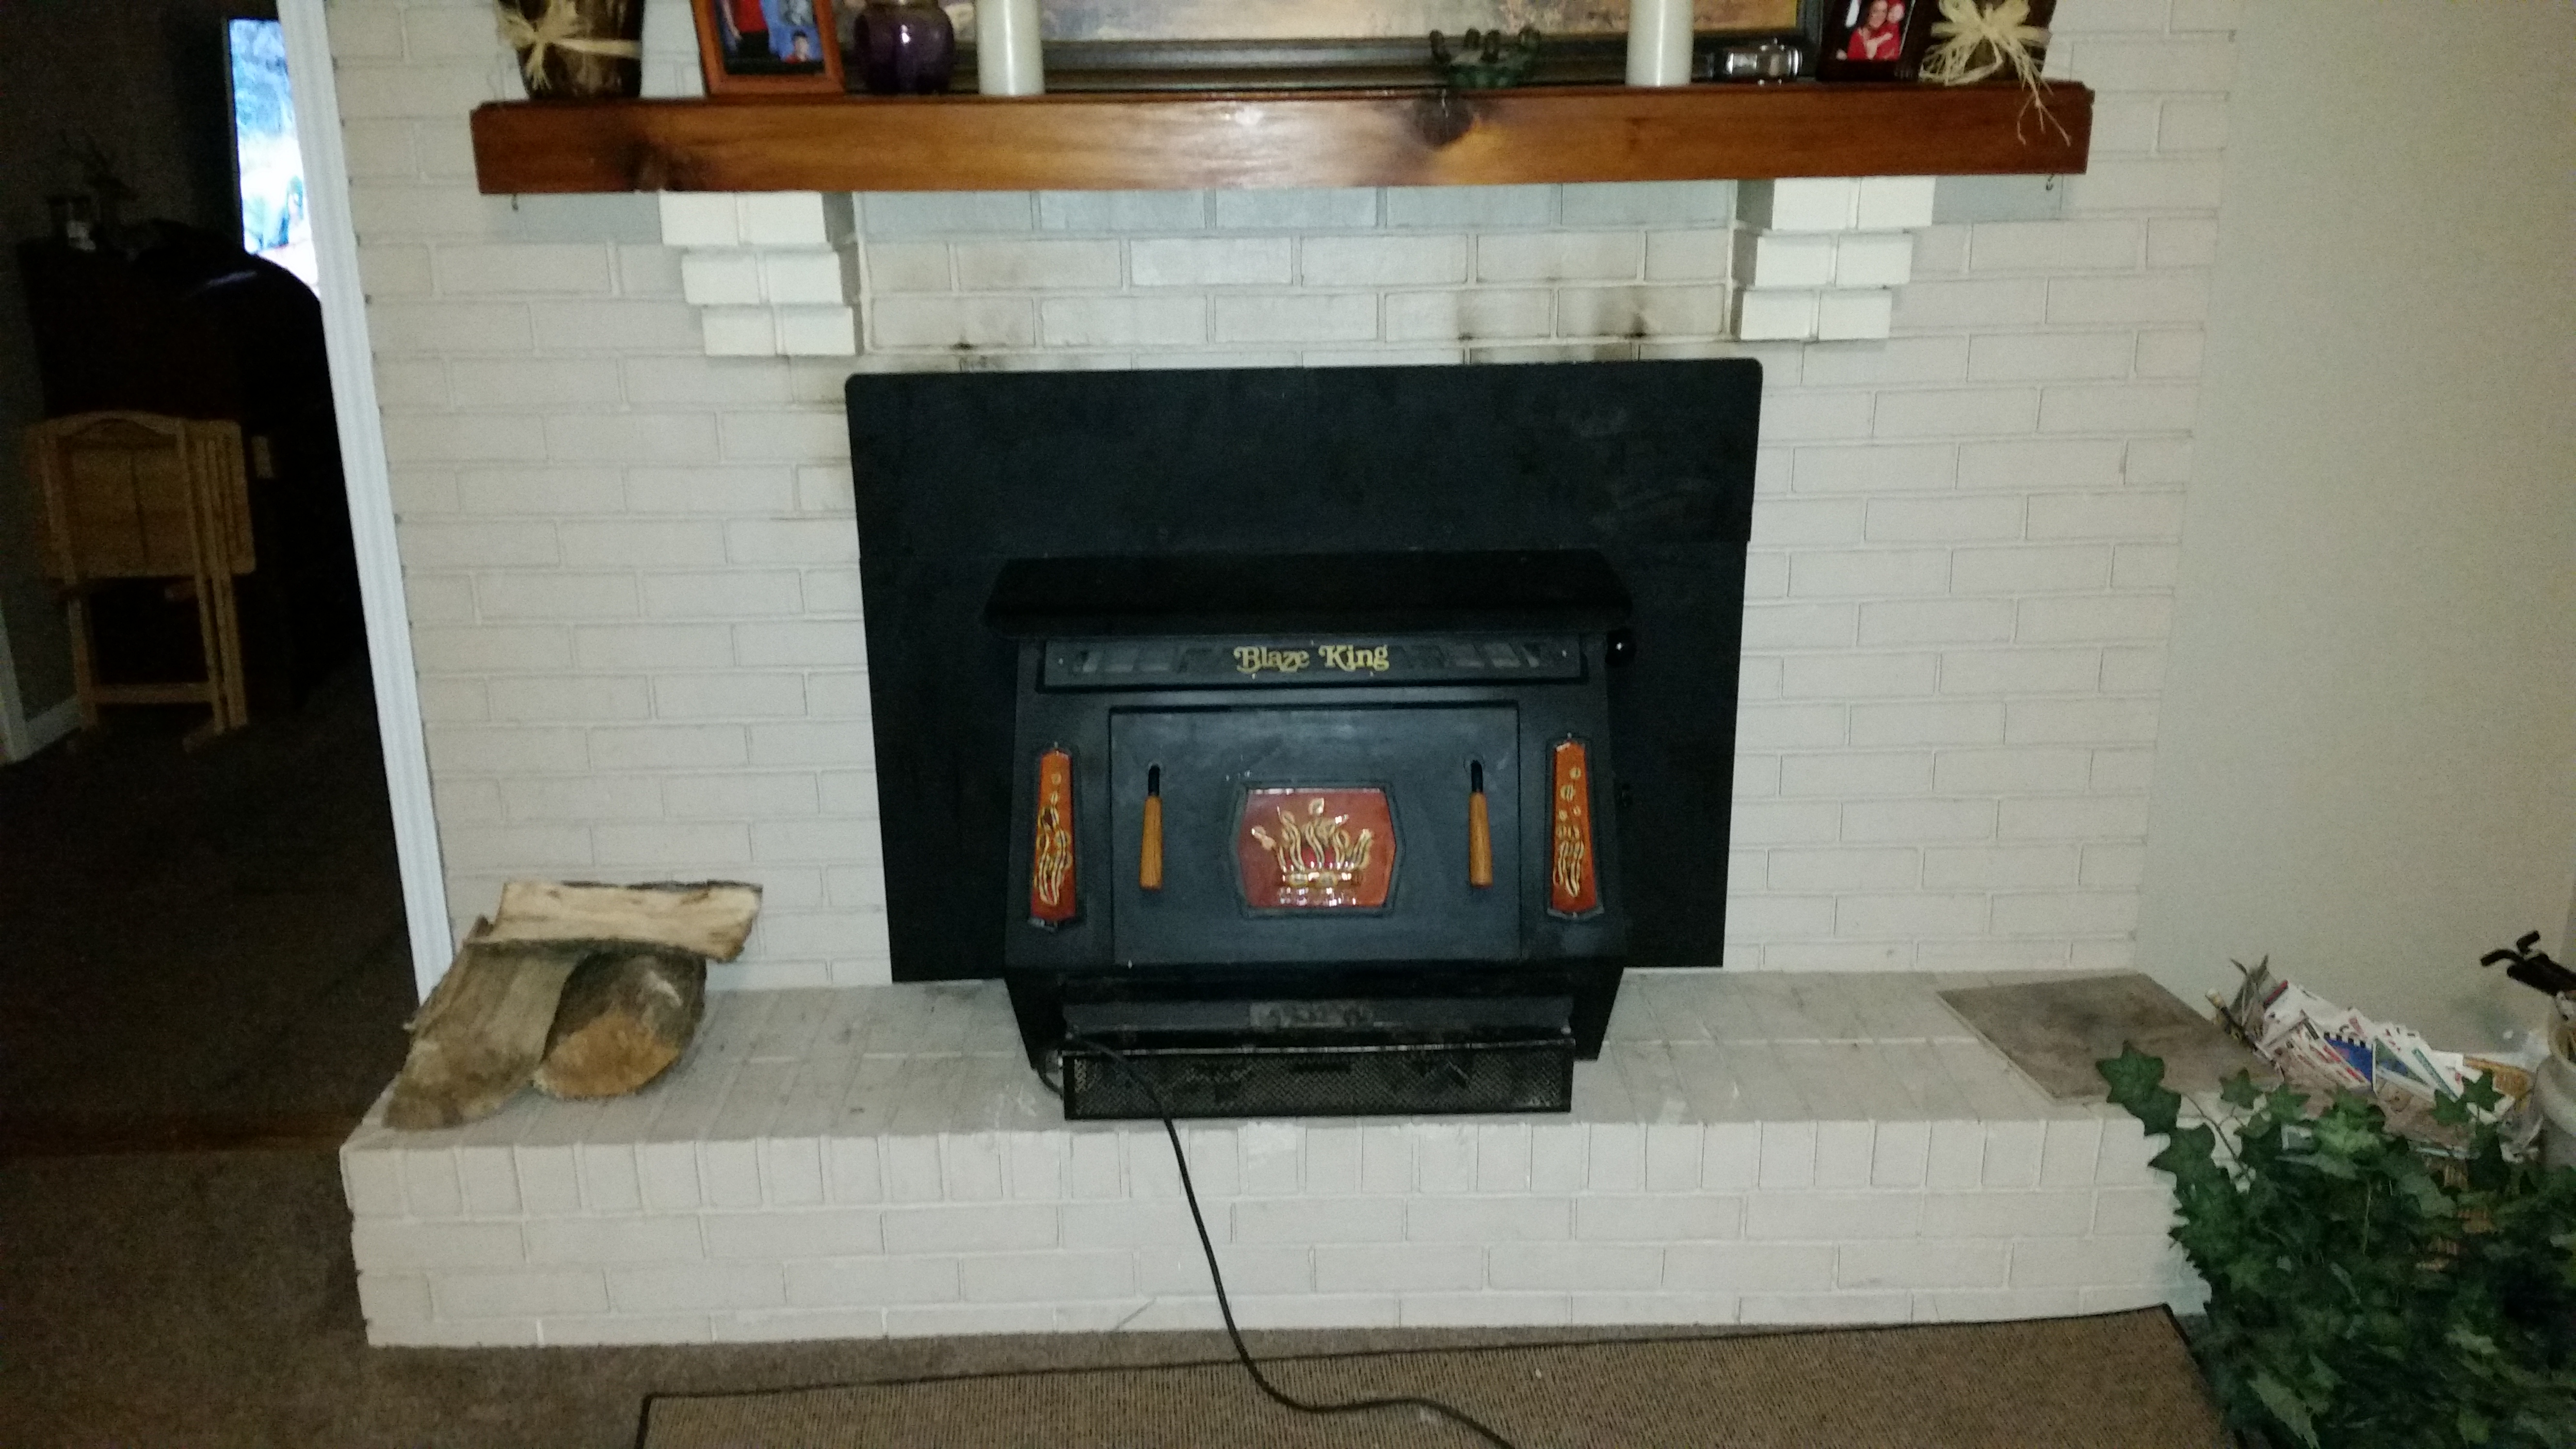 Old Blaze King Kff 403 Wood Burning Stoves Forum At Permies